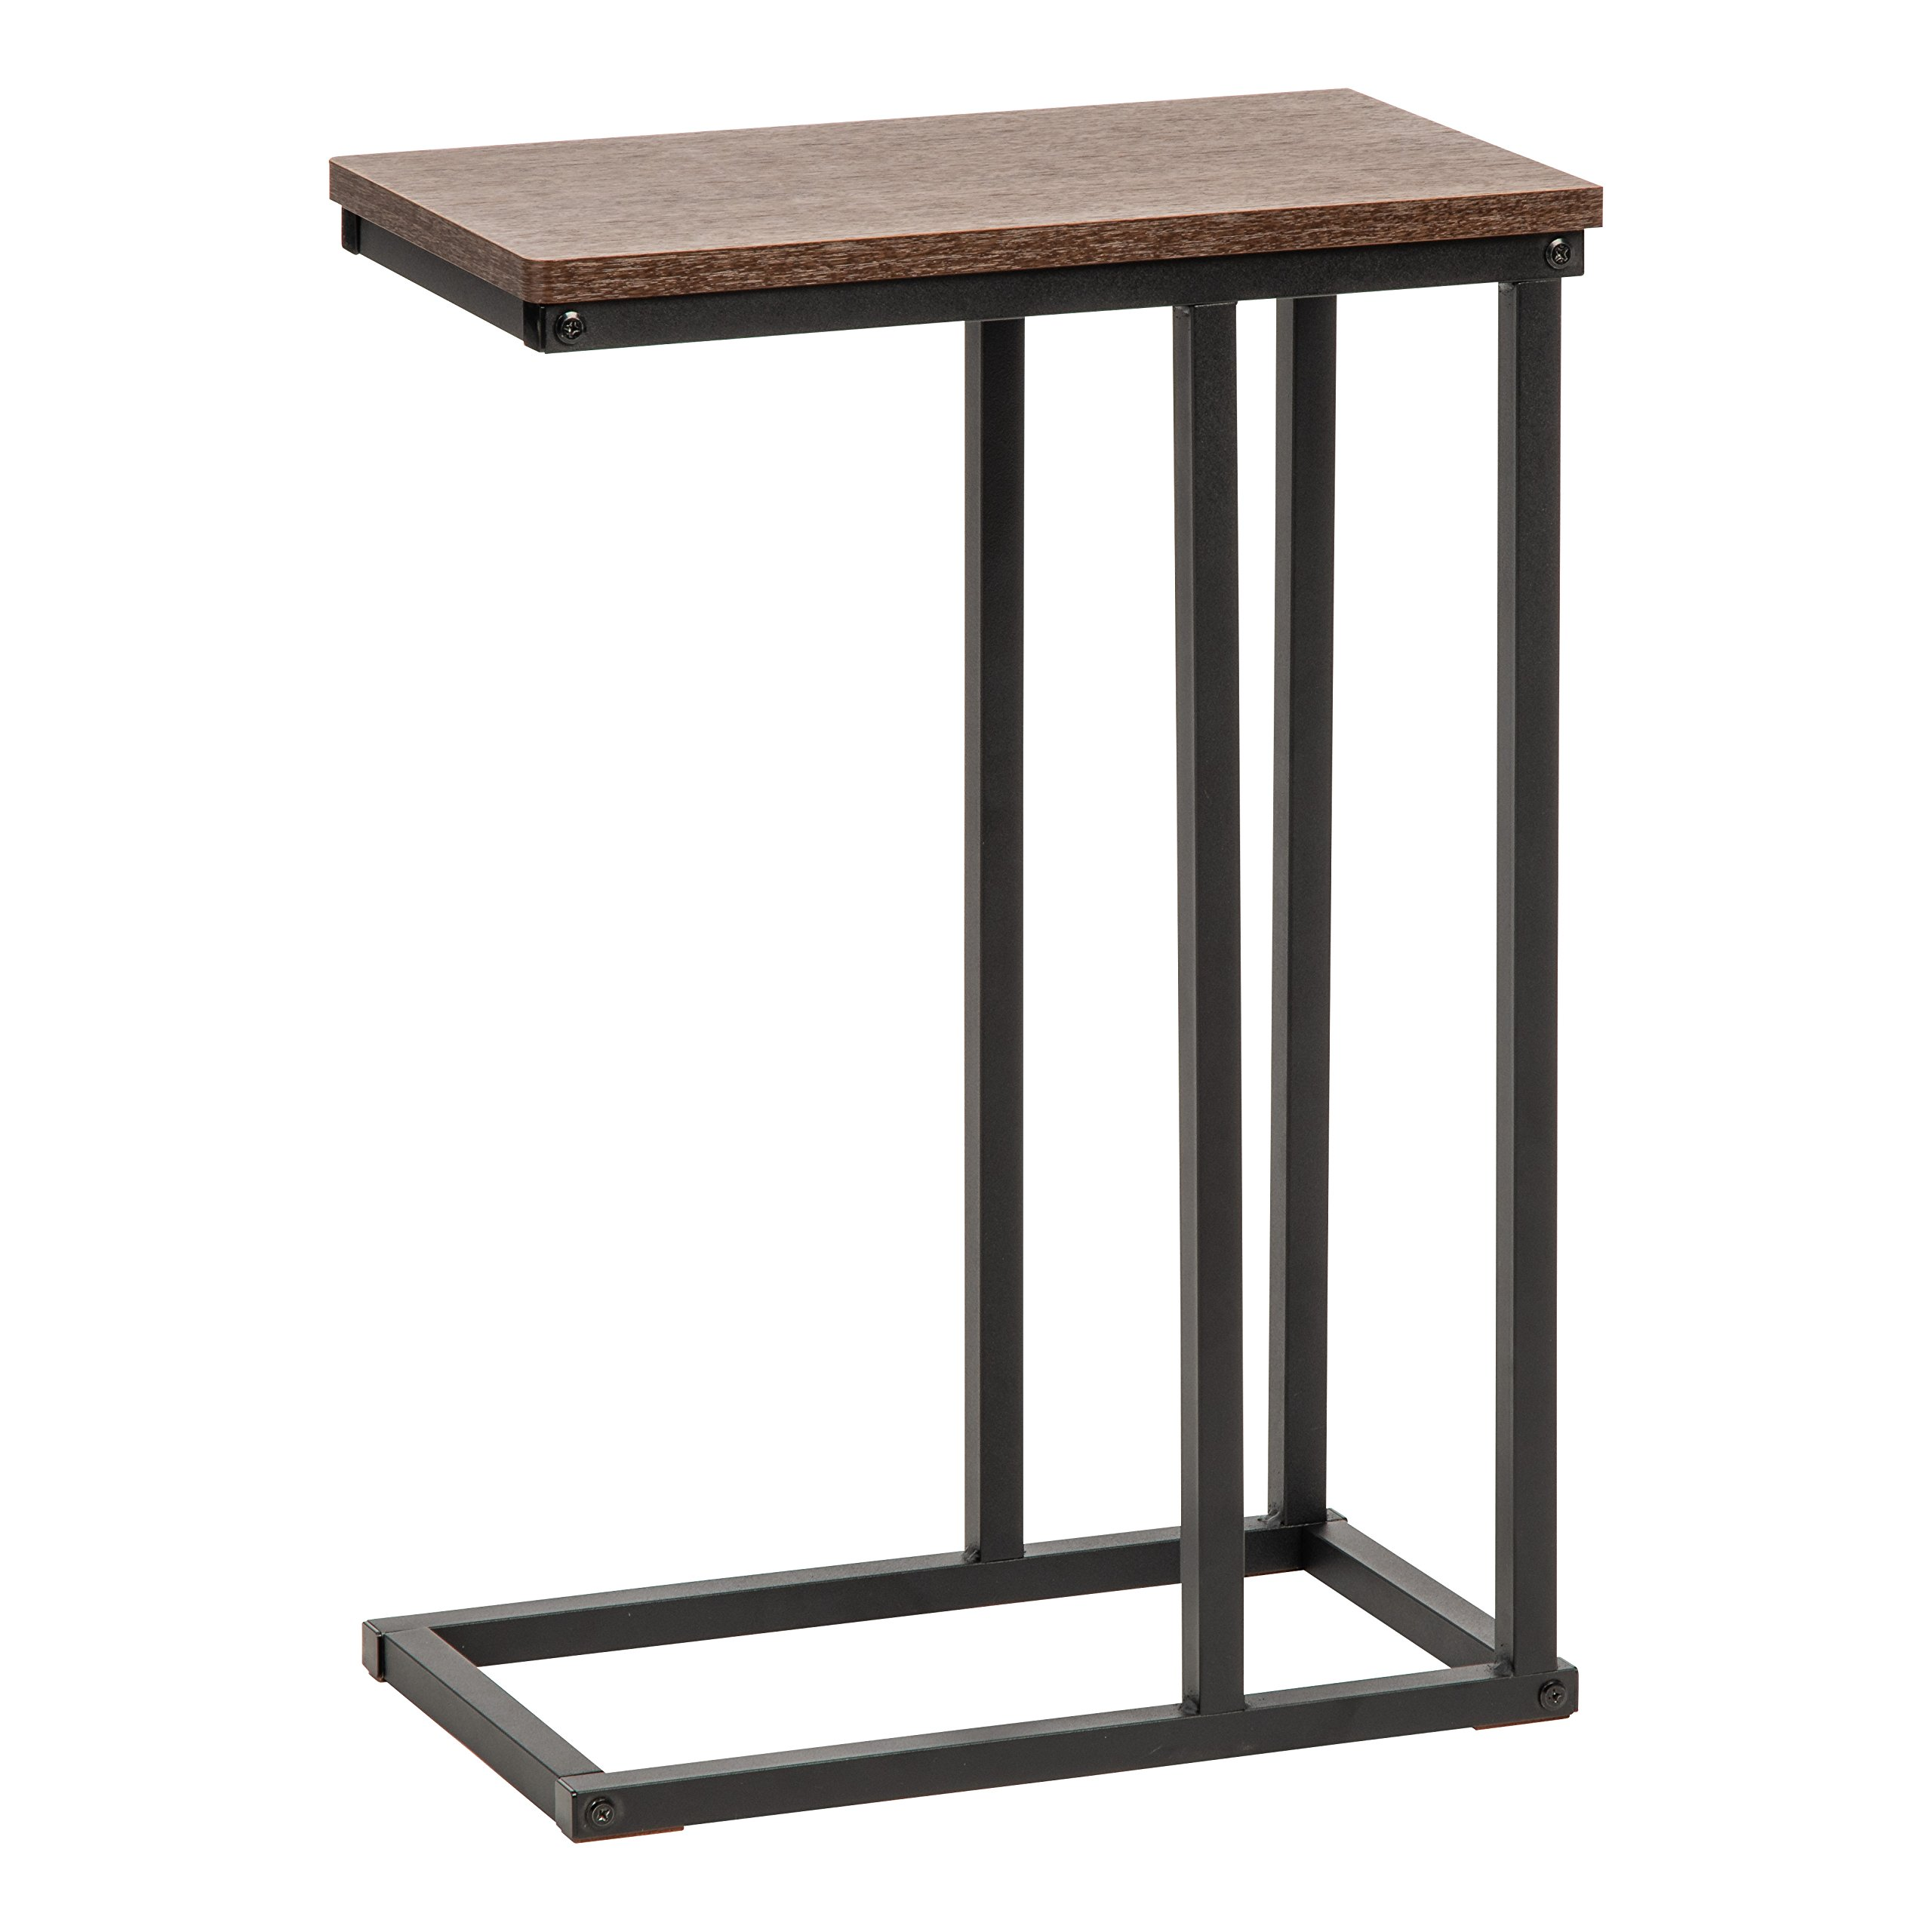 IRIS USA 596650 SDT-L Side Table, Brown by IRIS USA, Inc.